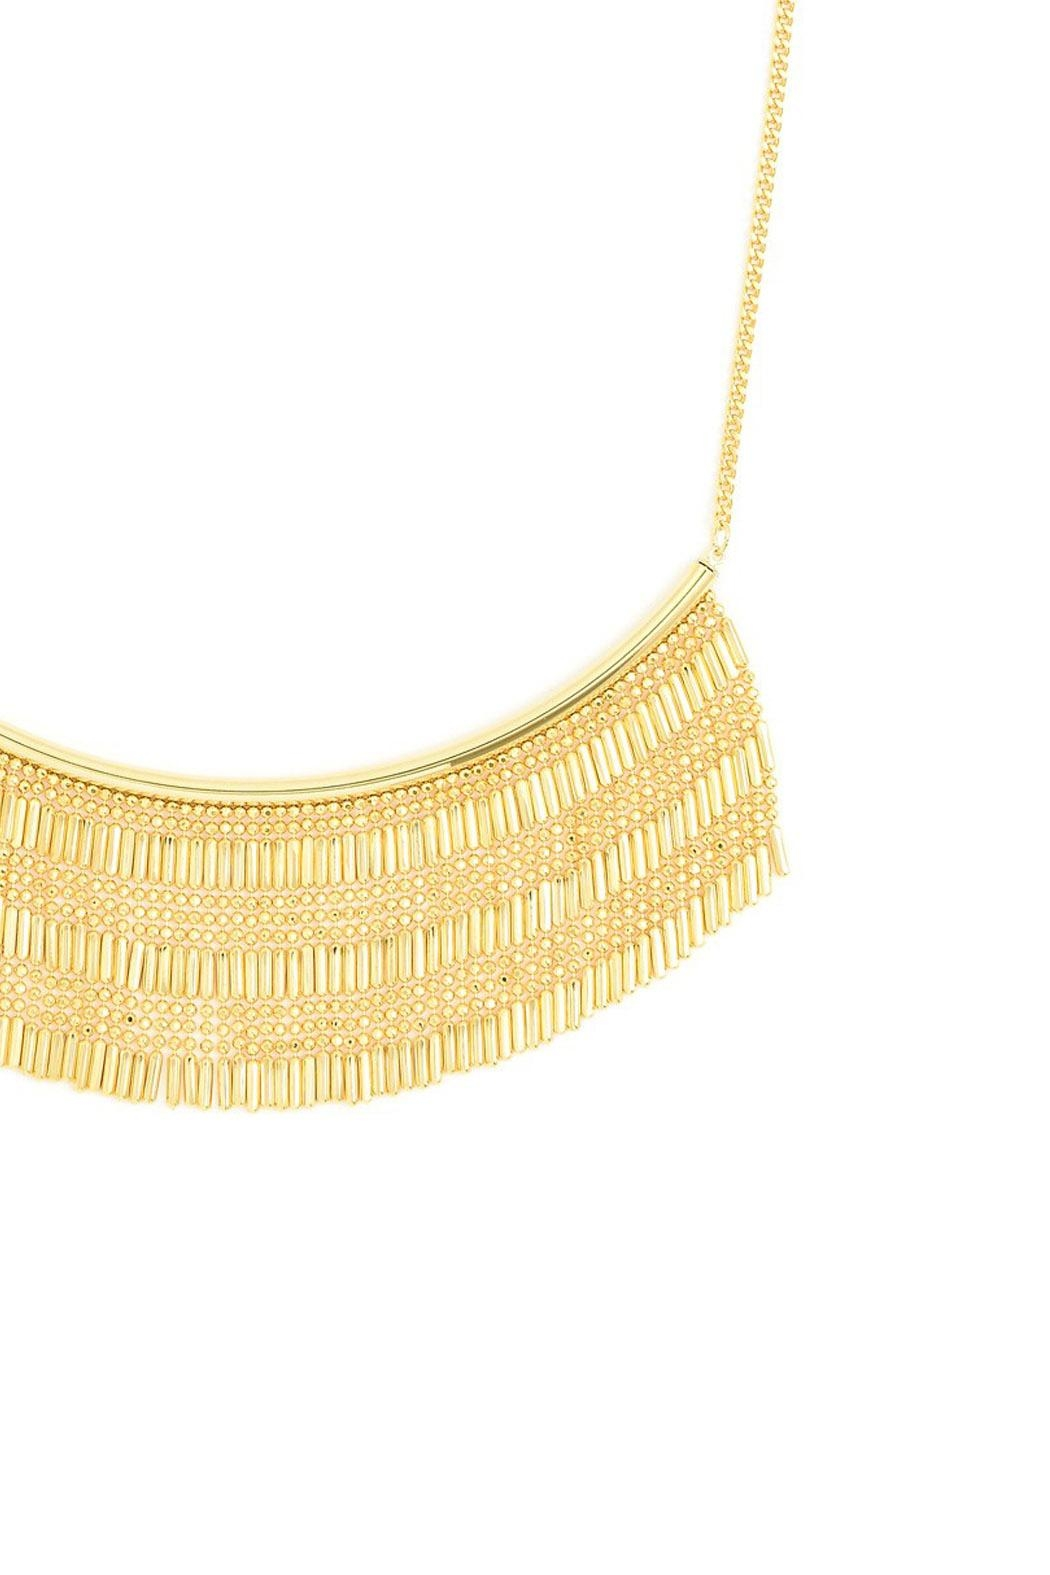 Wild Lilies Jewelry  Fringe Statement Necklace - Front Full Image